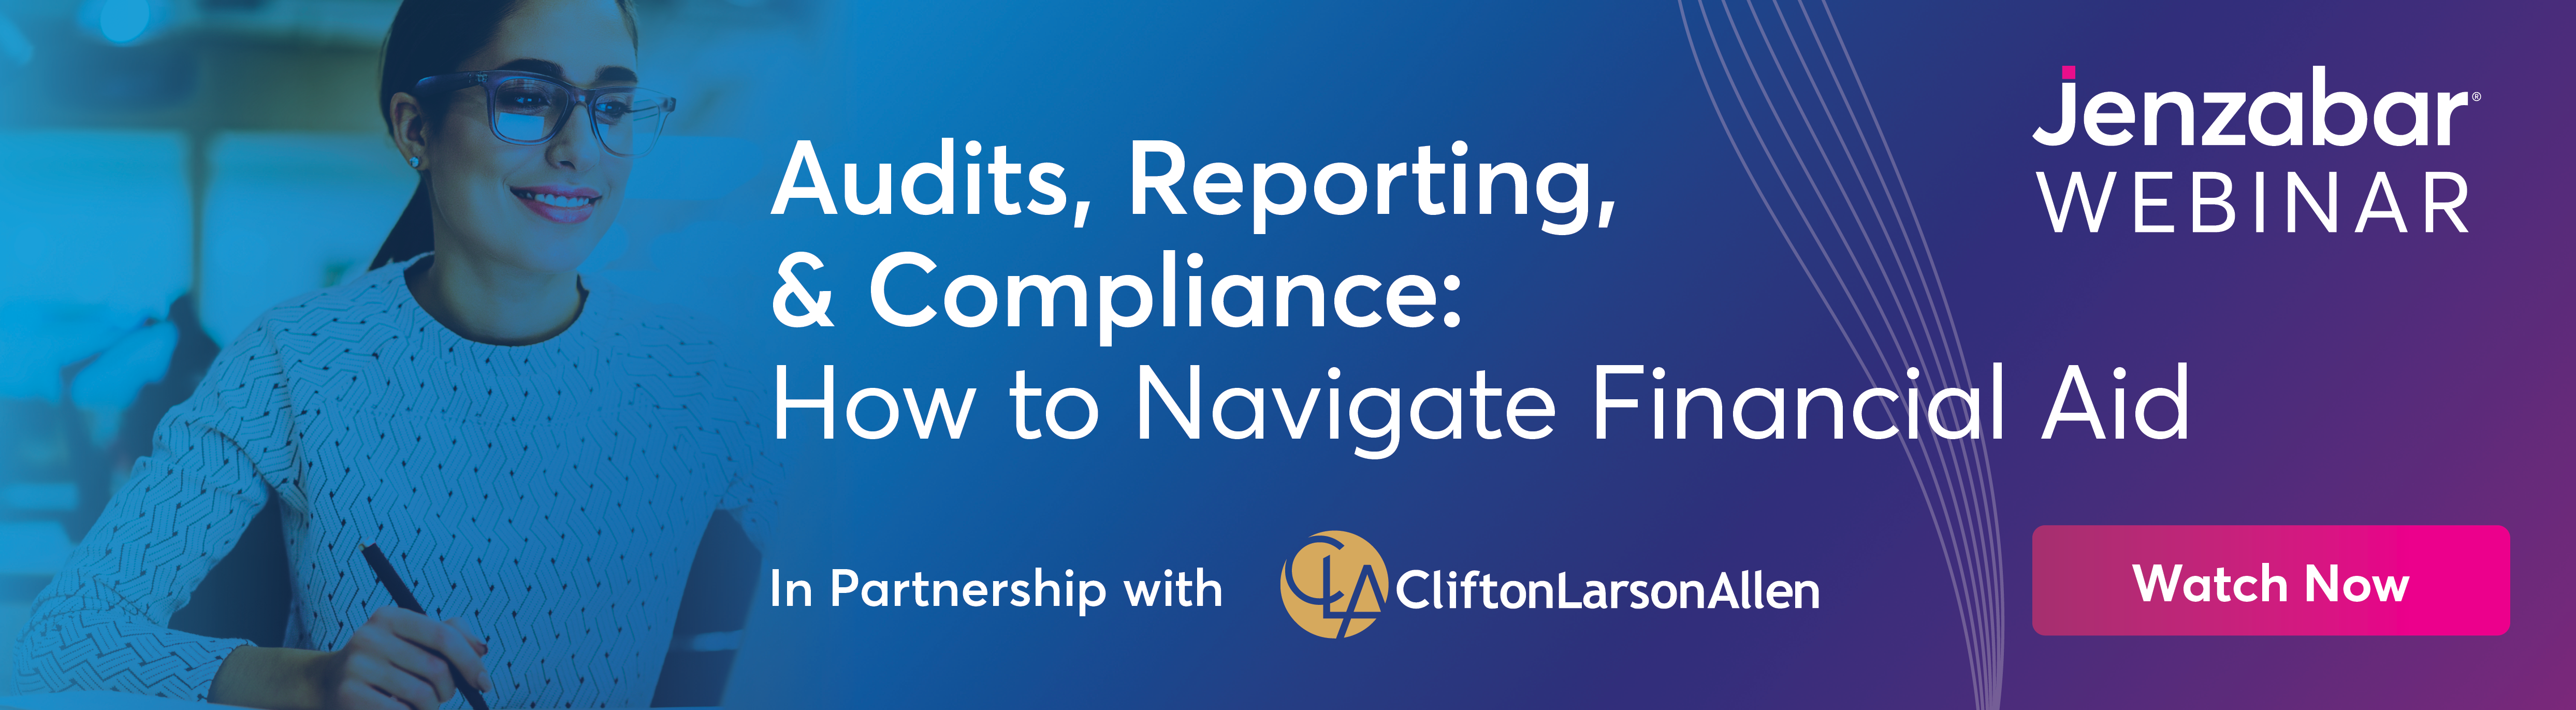 Audits, Reporting, & Compliance: How to Navigate Financial Aid